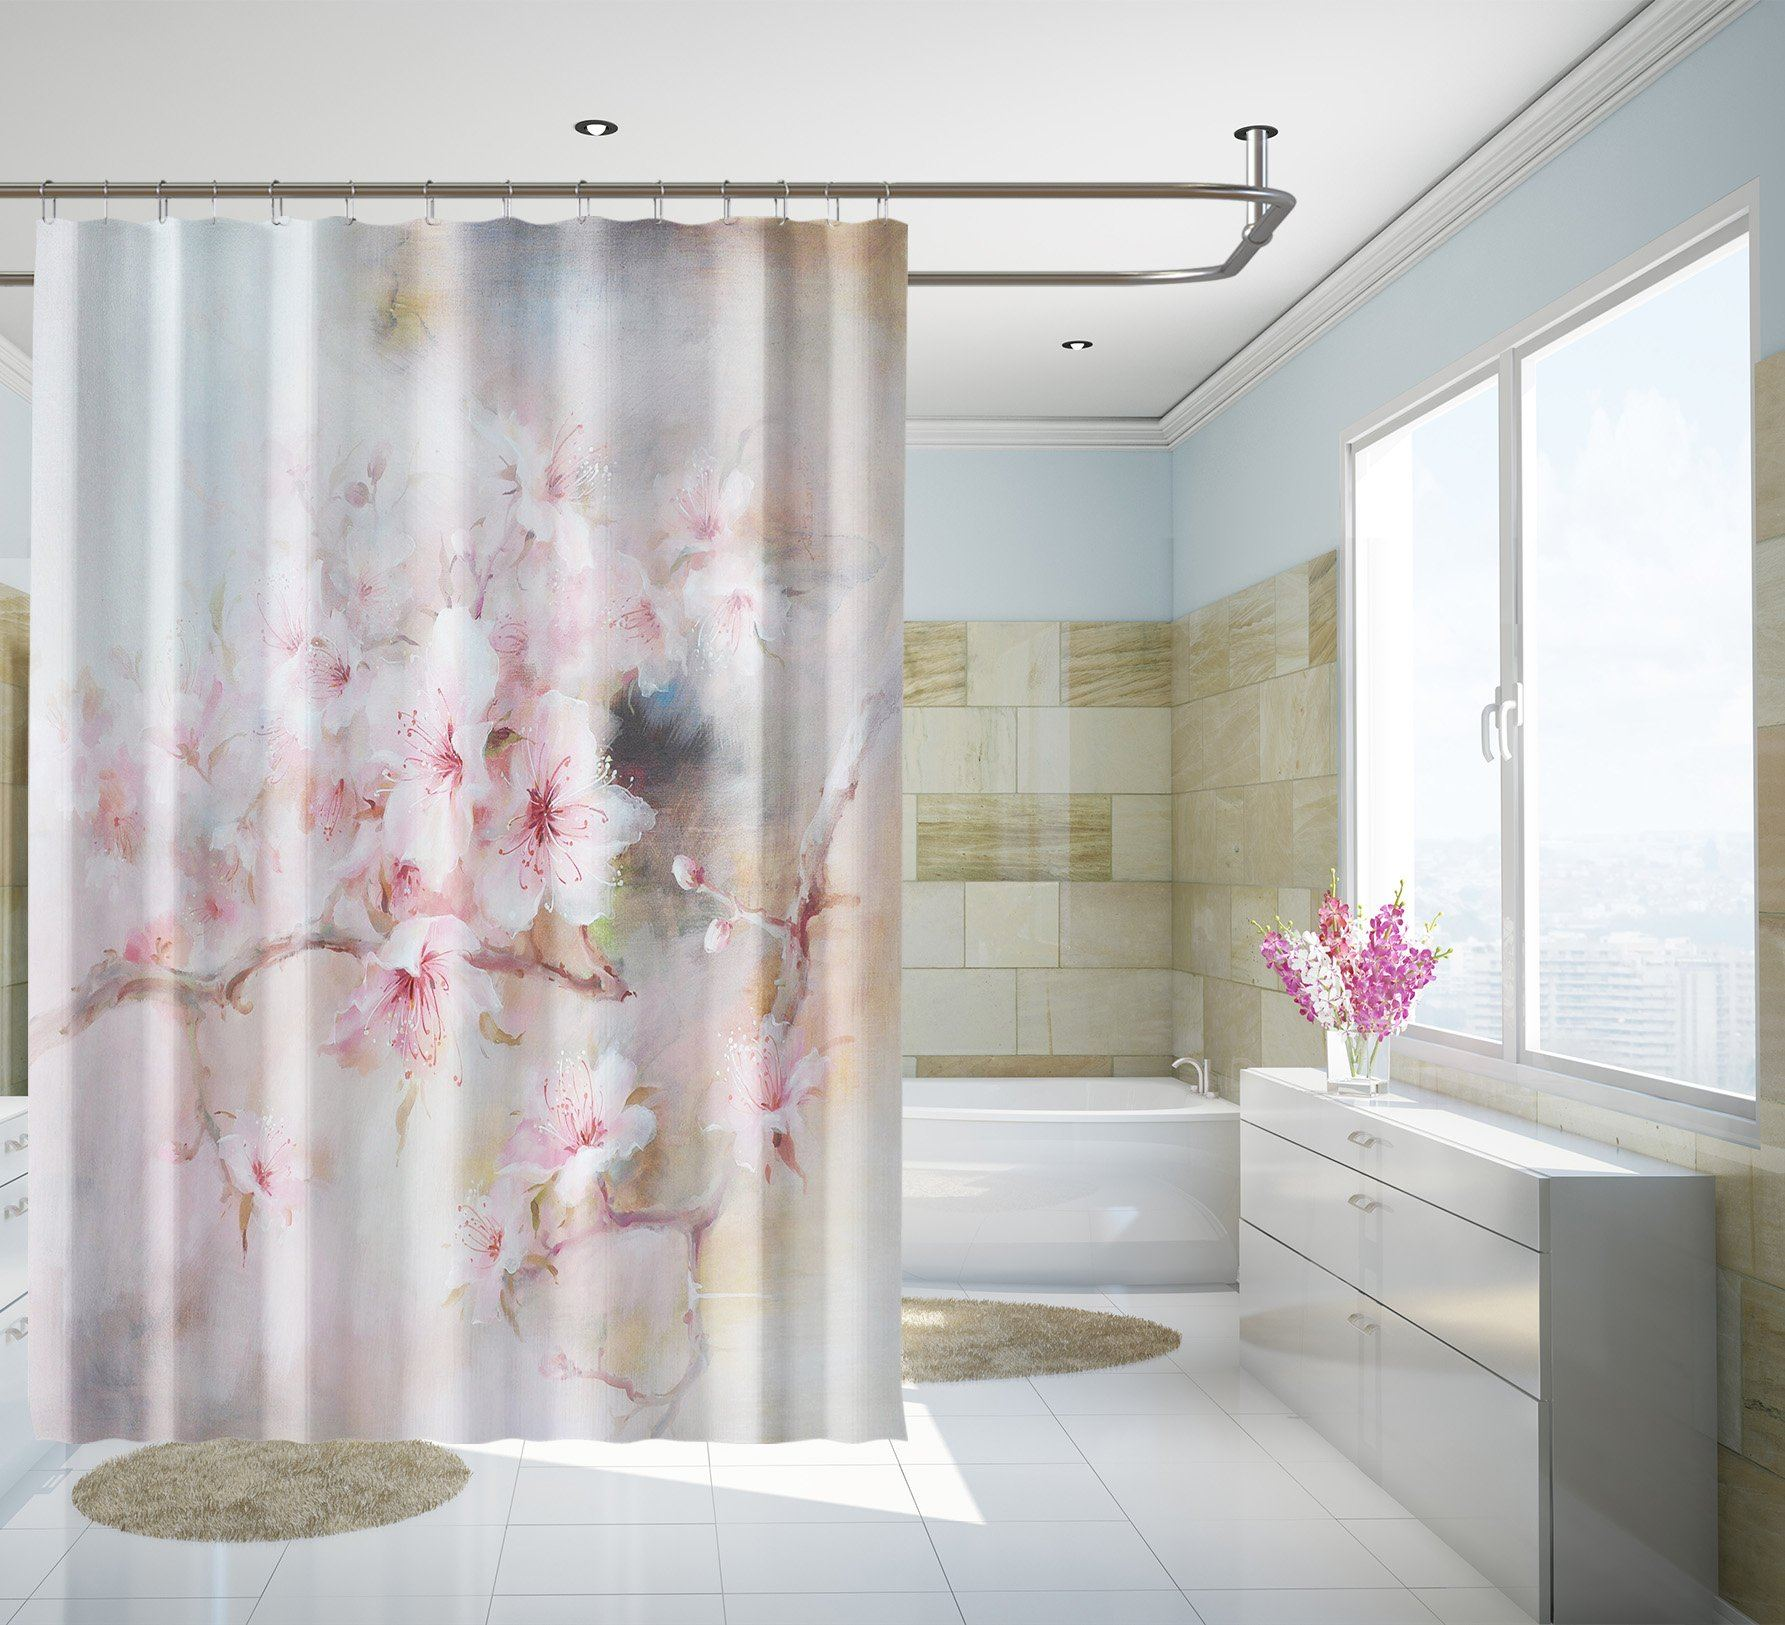 3D Beautiful Peach 134 Shower Curtain 3D Shower Curtain AJ Creativity Home